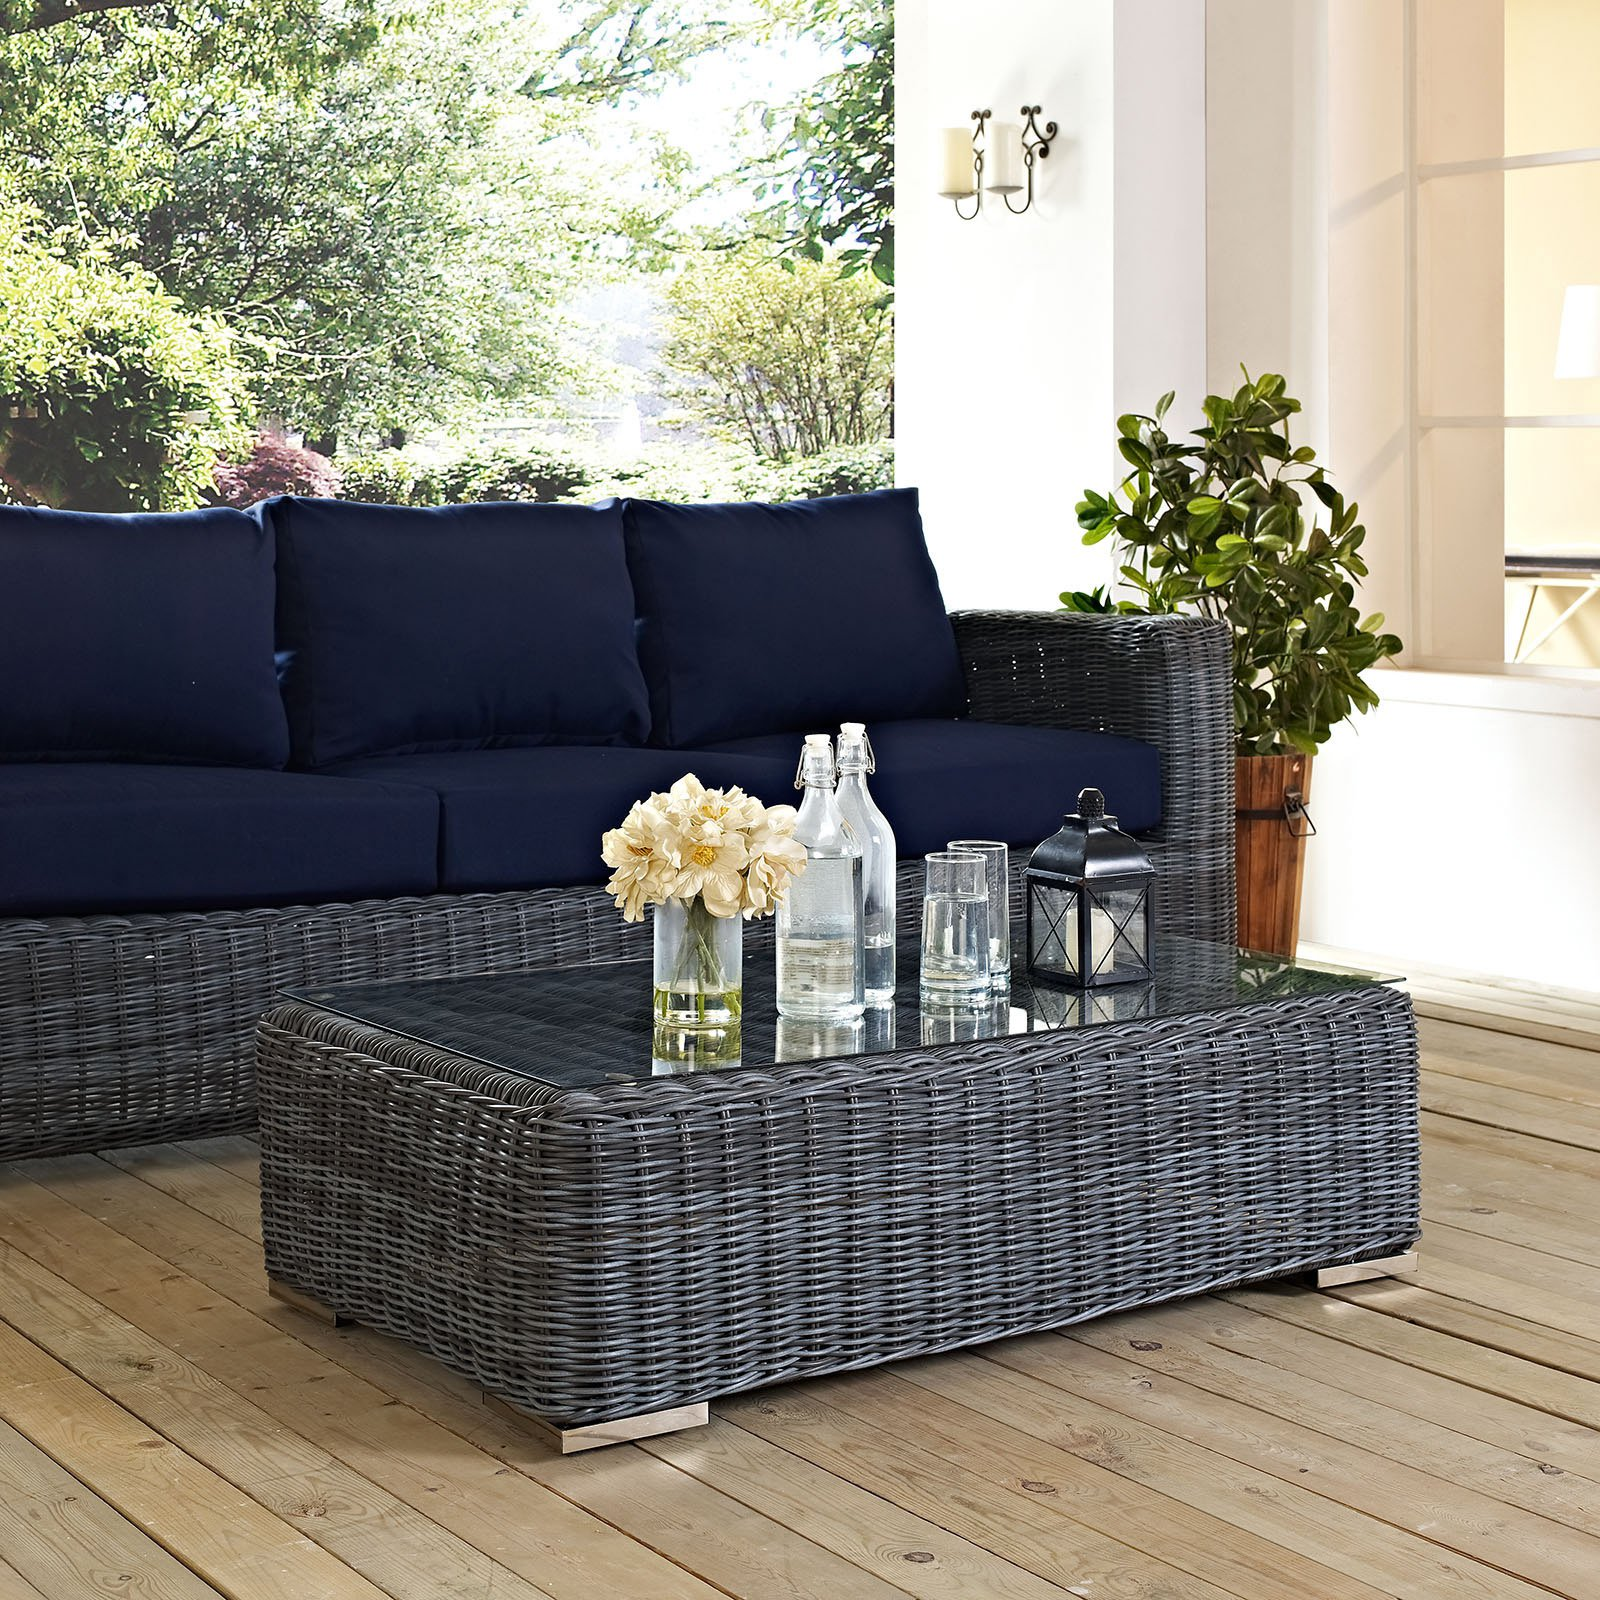 Modway Summon Outdoor Patio Glass Top Coffee Table in Gray by Modway